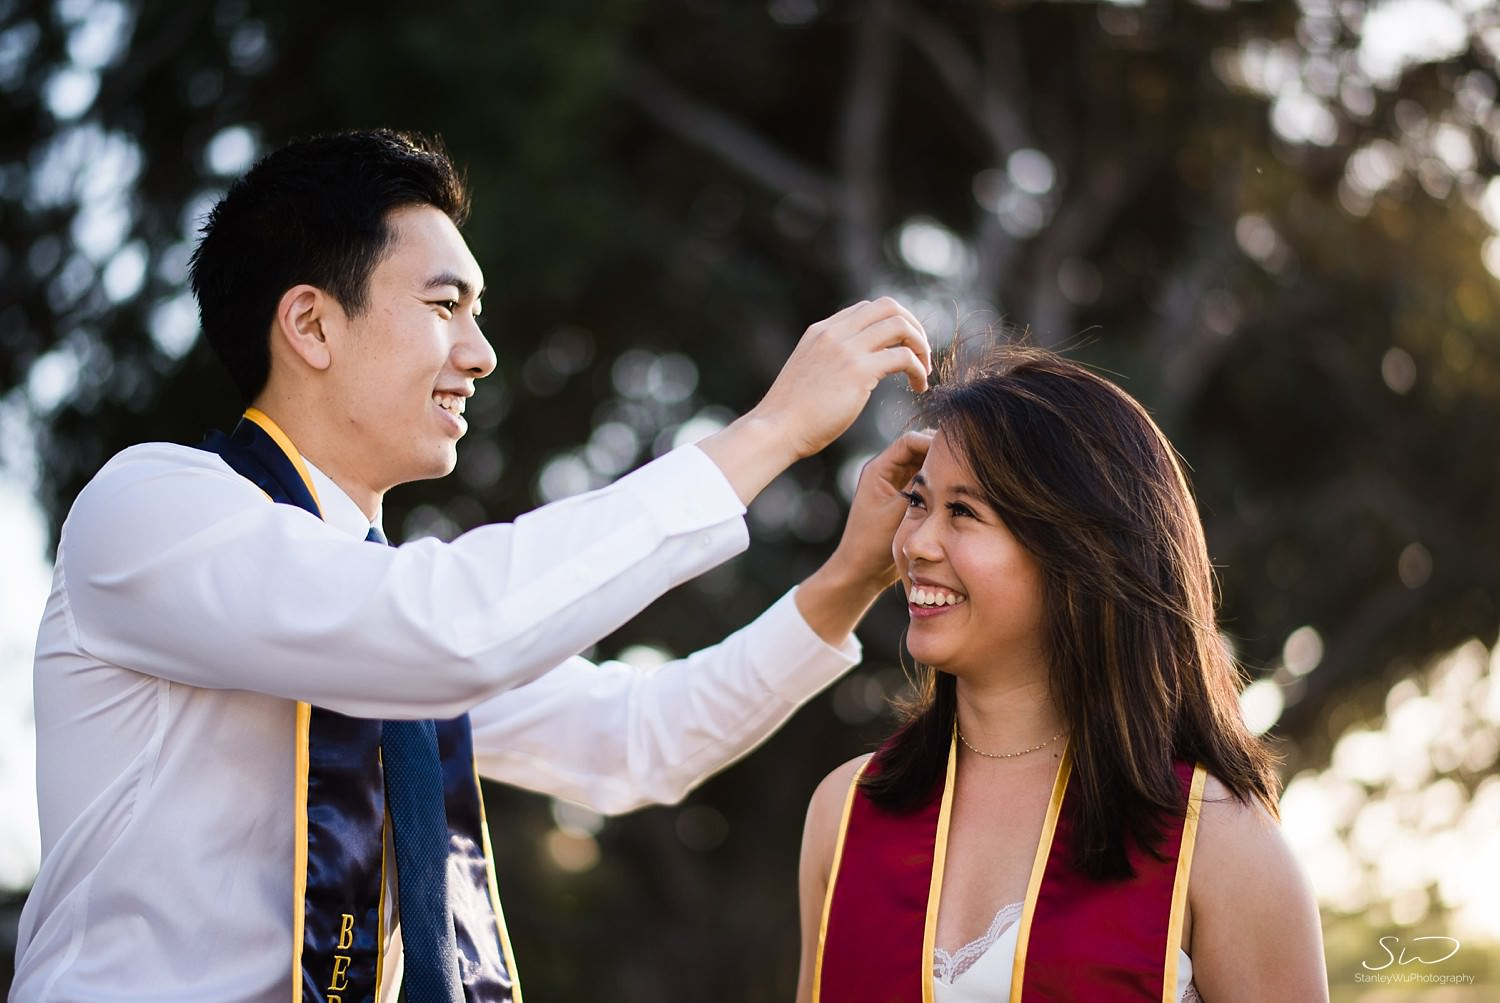 Couple from USC and UC Berkeley wearing sashes fixing hair | Los Angeles Graduation and Senior Portrait Photographer